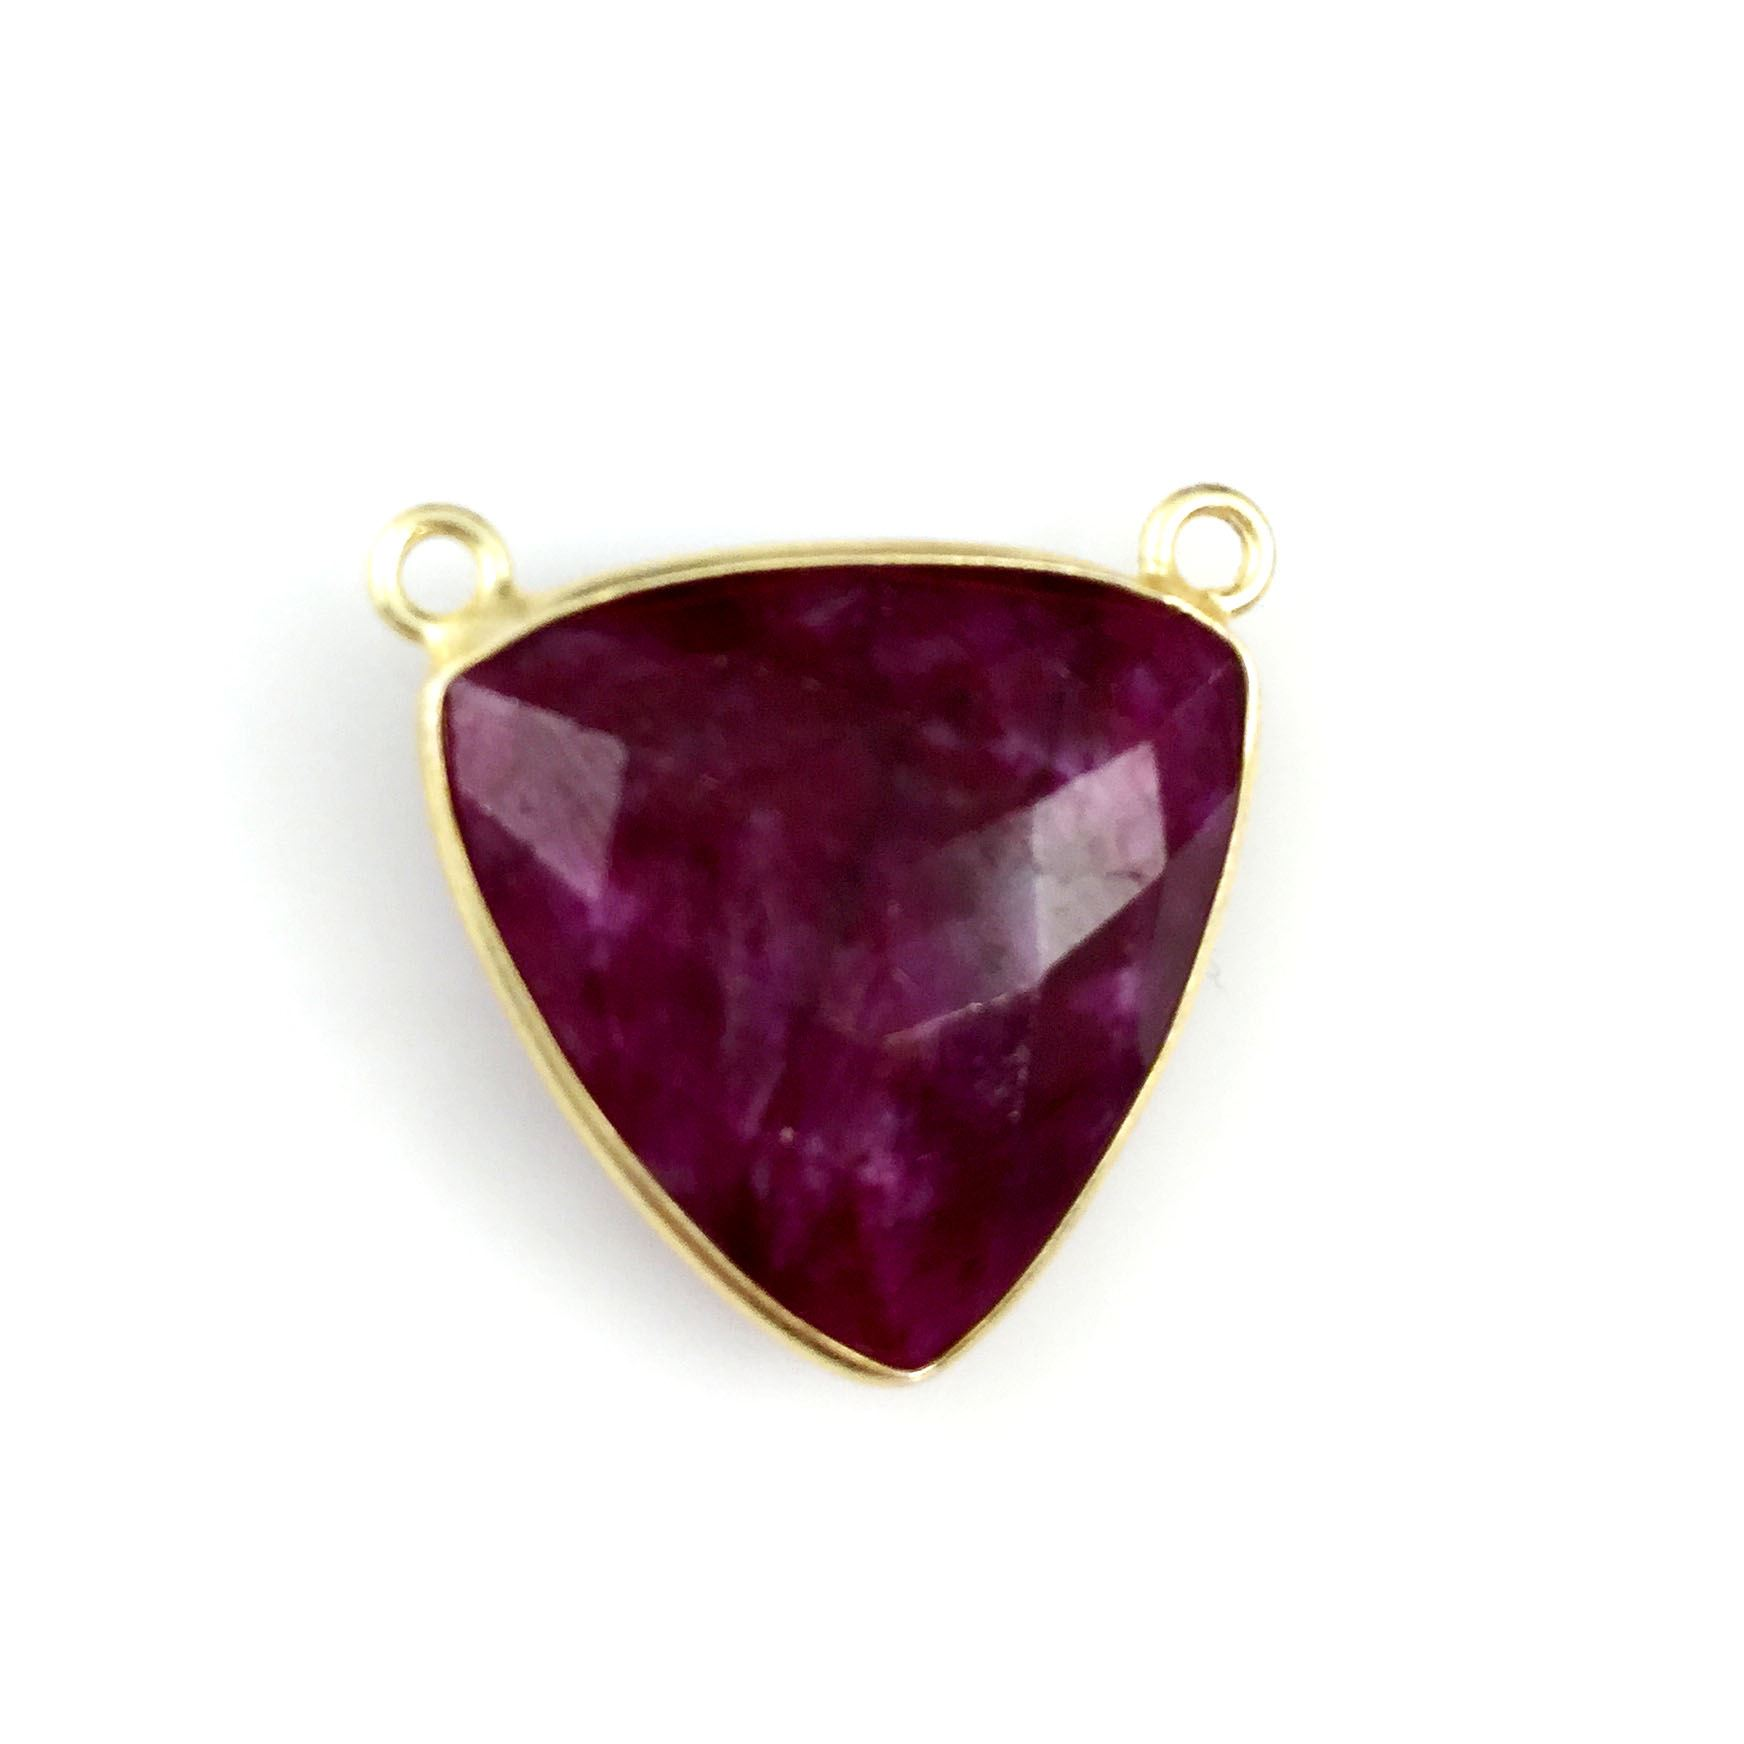 Bezel Gemstone Connector Pendant - Ruby Dyed - Gold plated Sterling Silver - Large Trillion Shaped Faceted - 18 mm - 1 piece